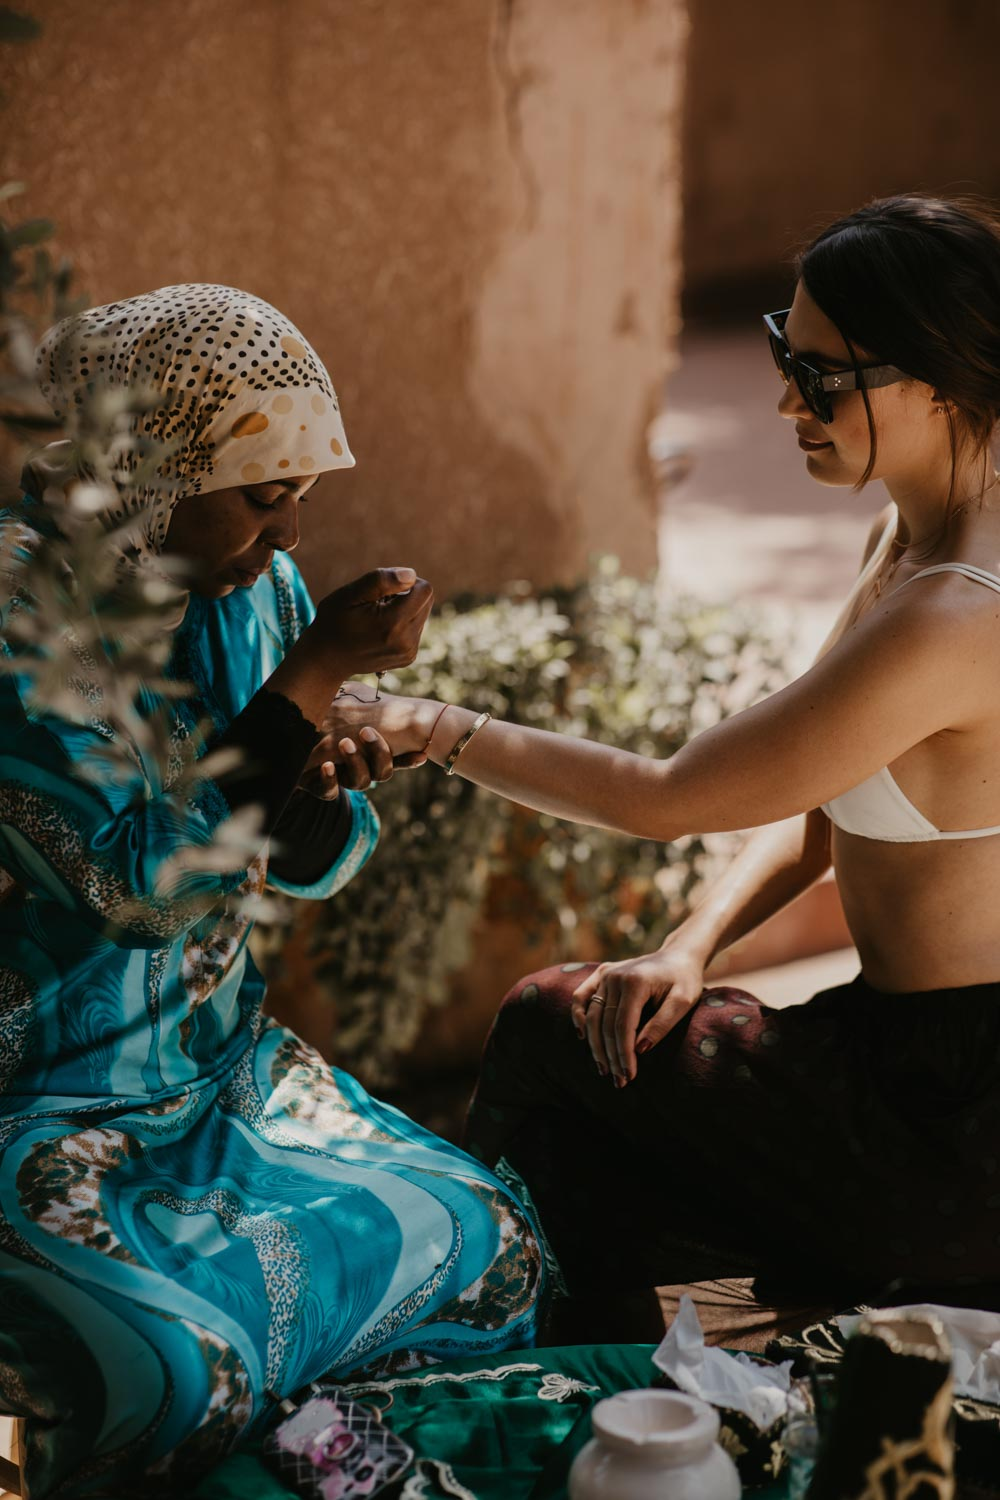 Postcards From Morocco - you rock my life